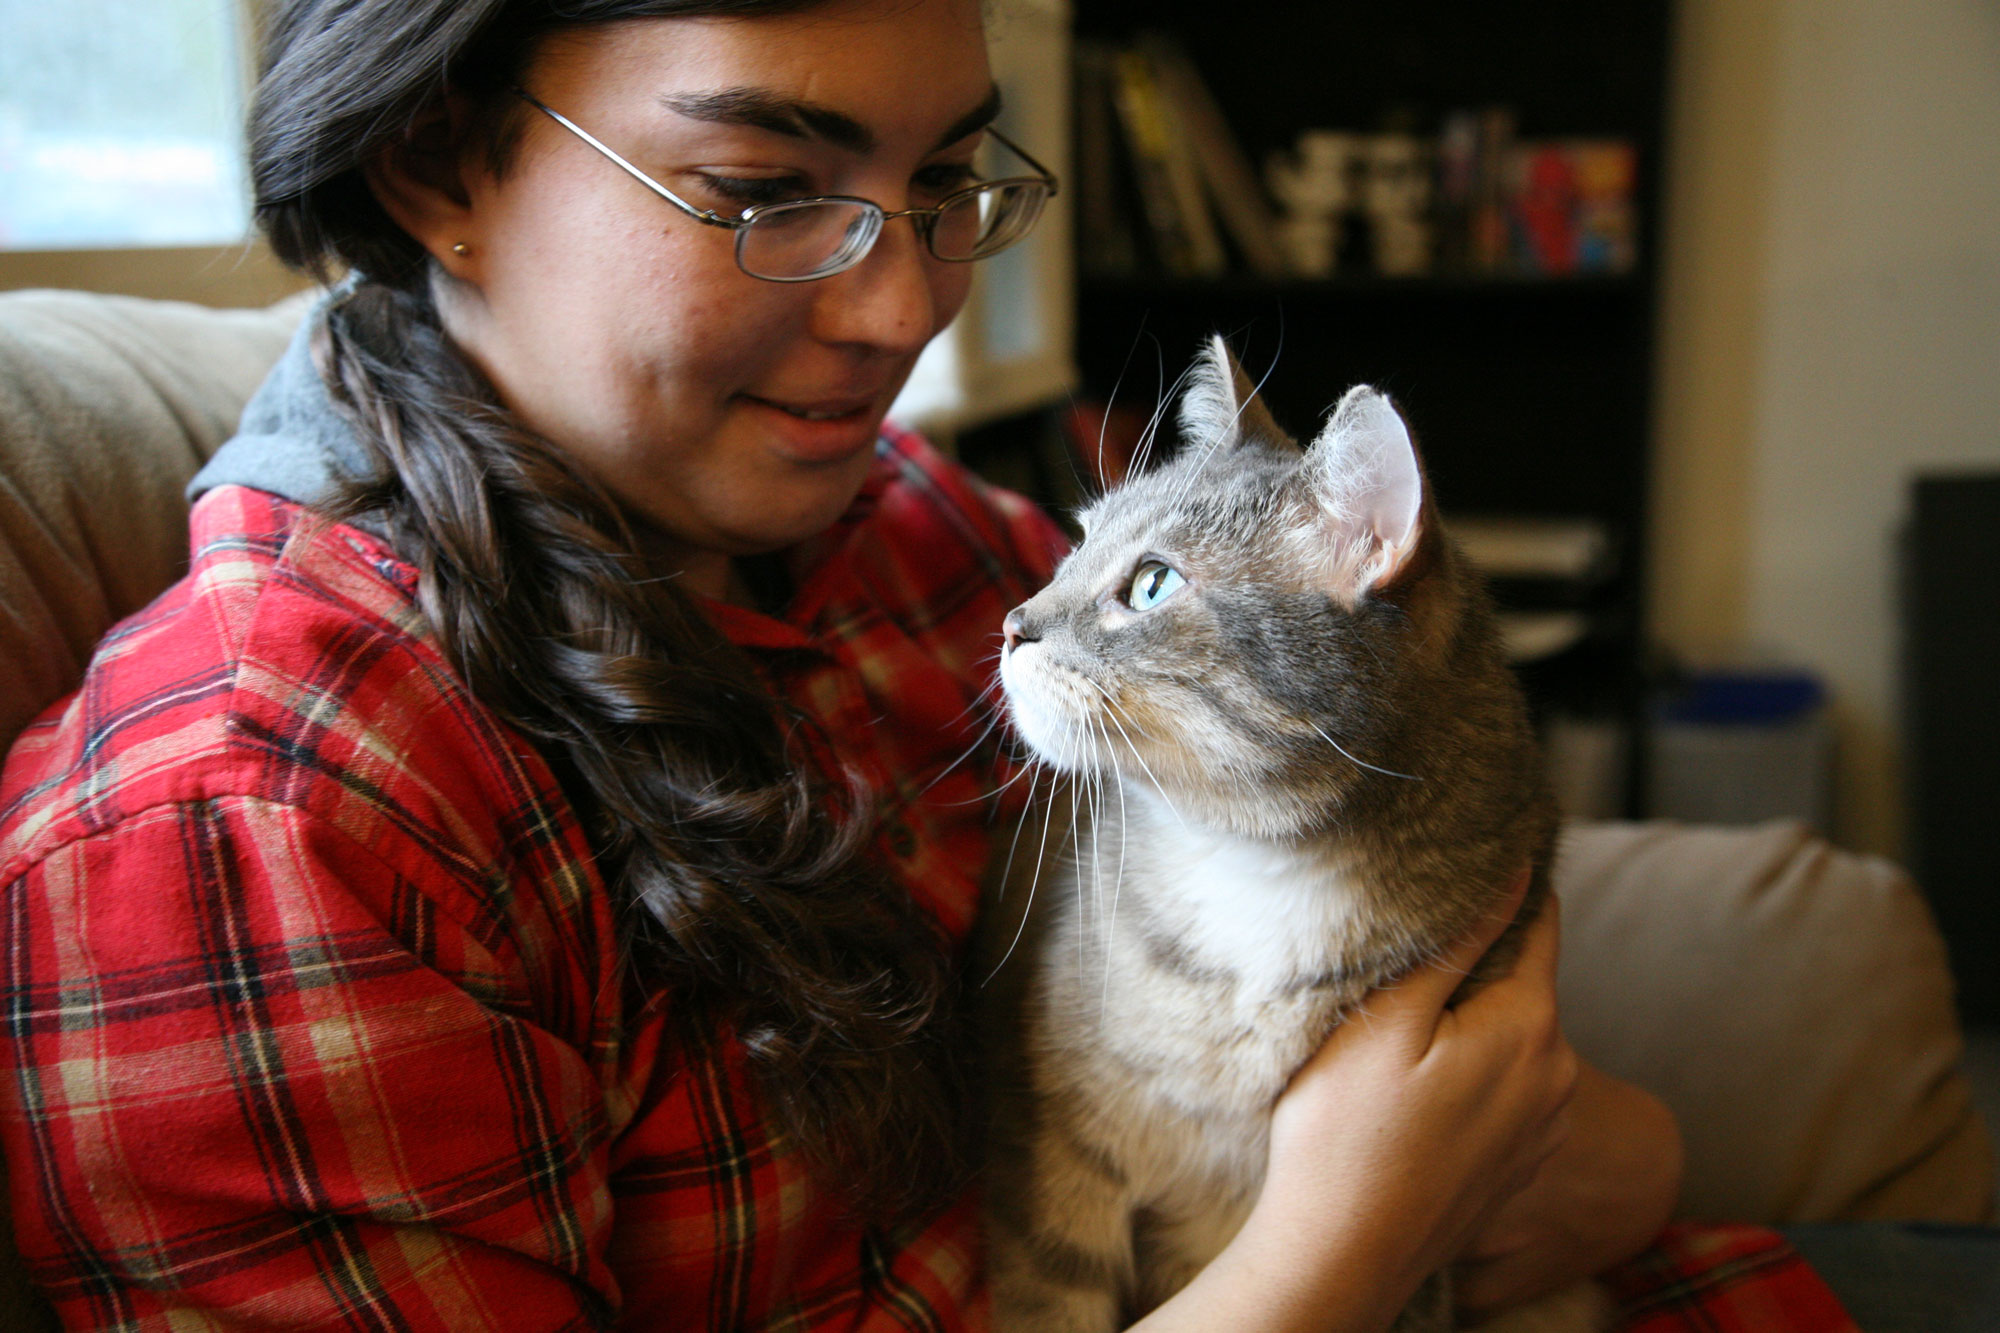 <p>A.J. White says his cats help him with depression and anxiety and are a large part of the reason he's ableto function in the world. He holds down a job at a local gas station and is planning to head off to college. He's hoping the cats can come, too.</p>